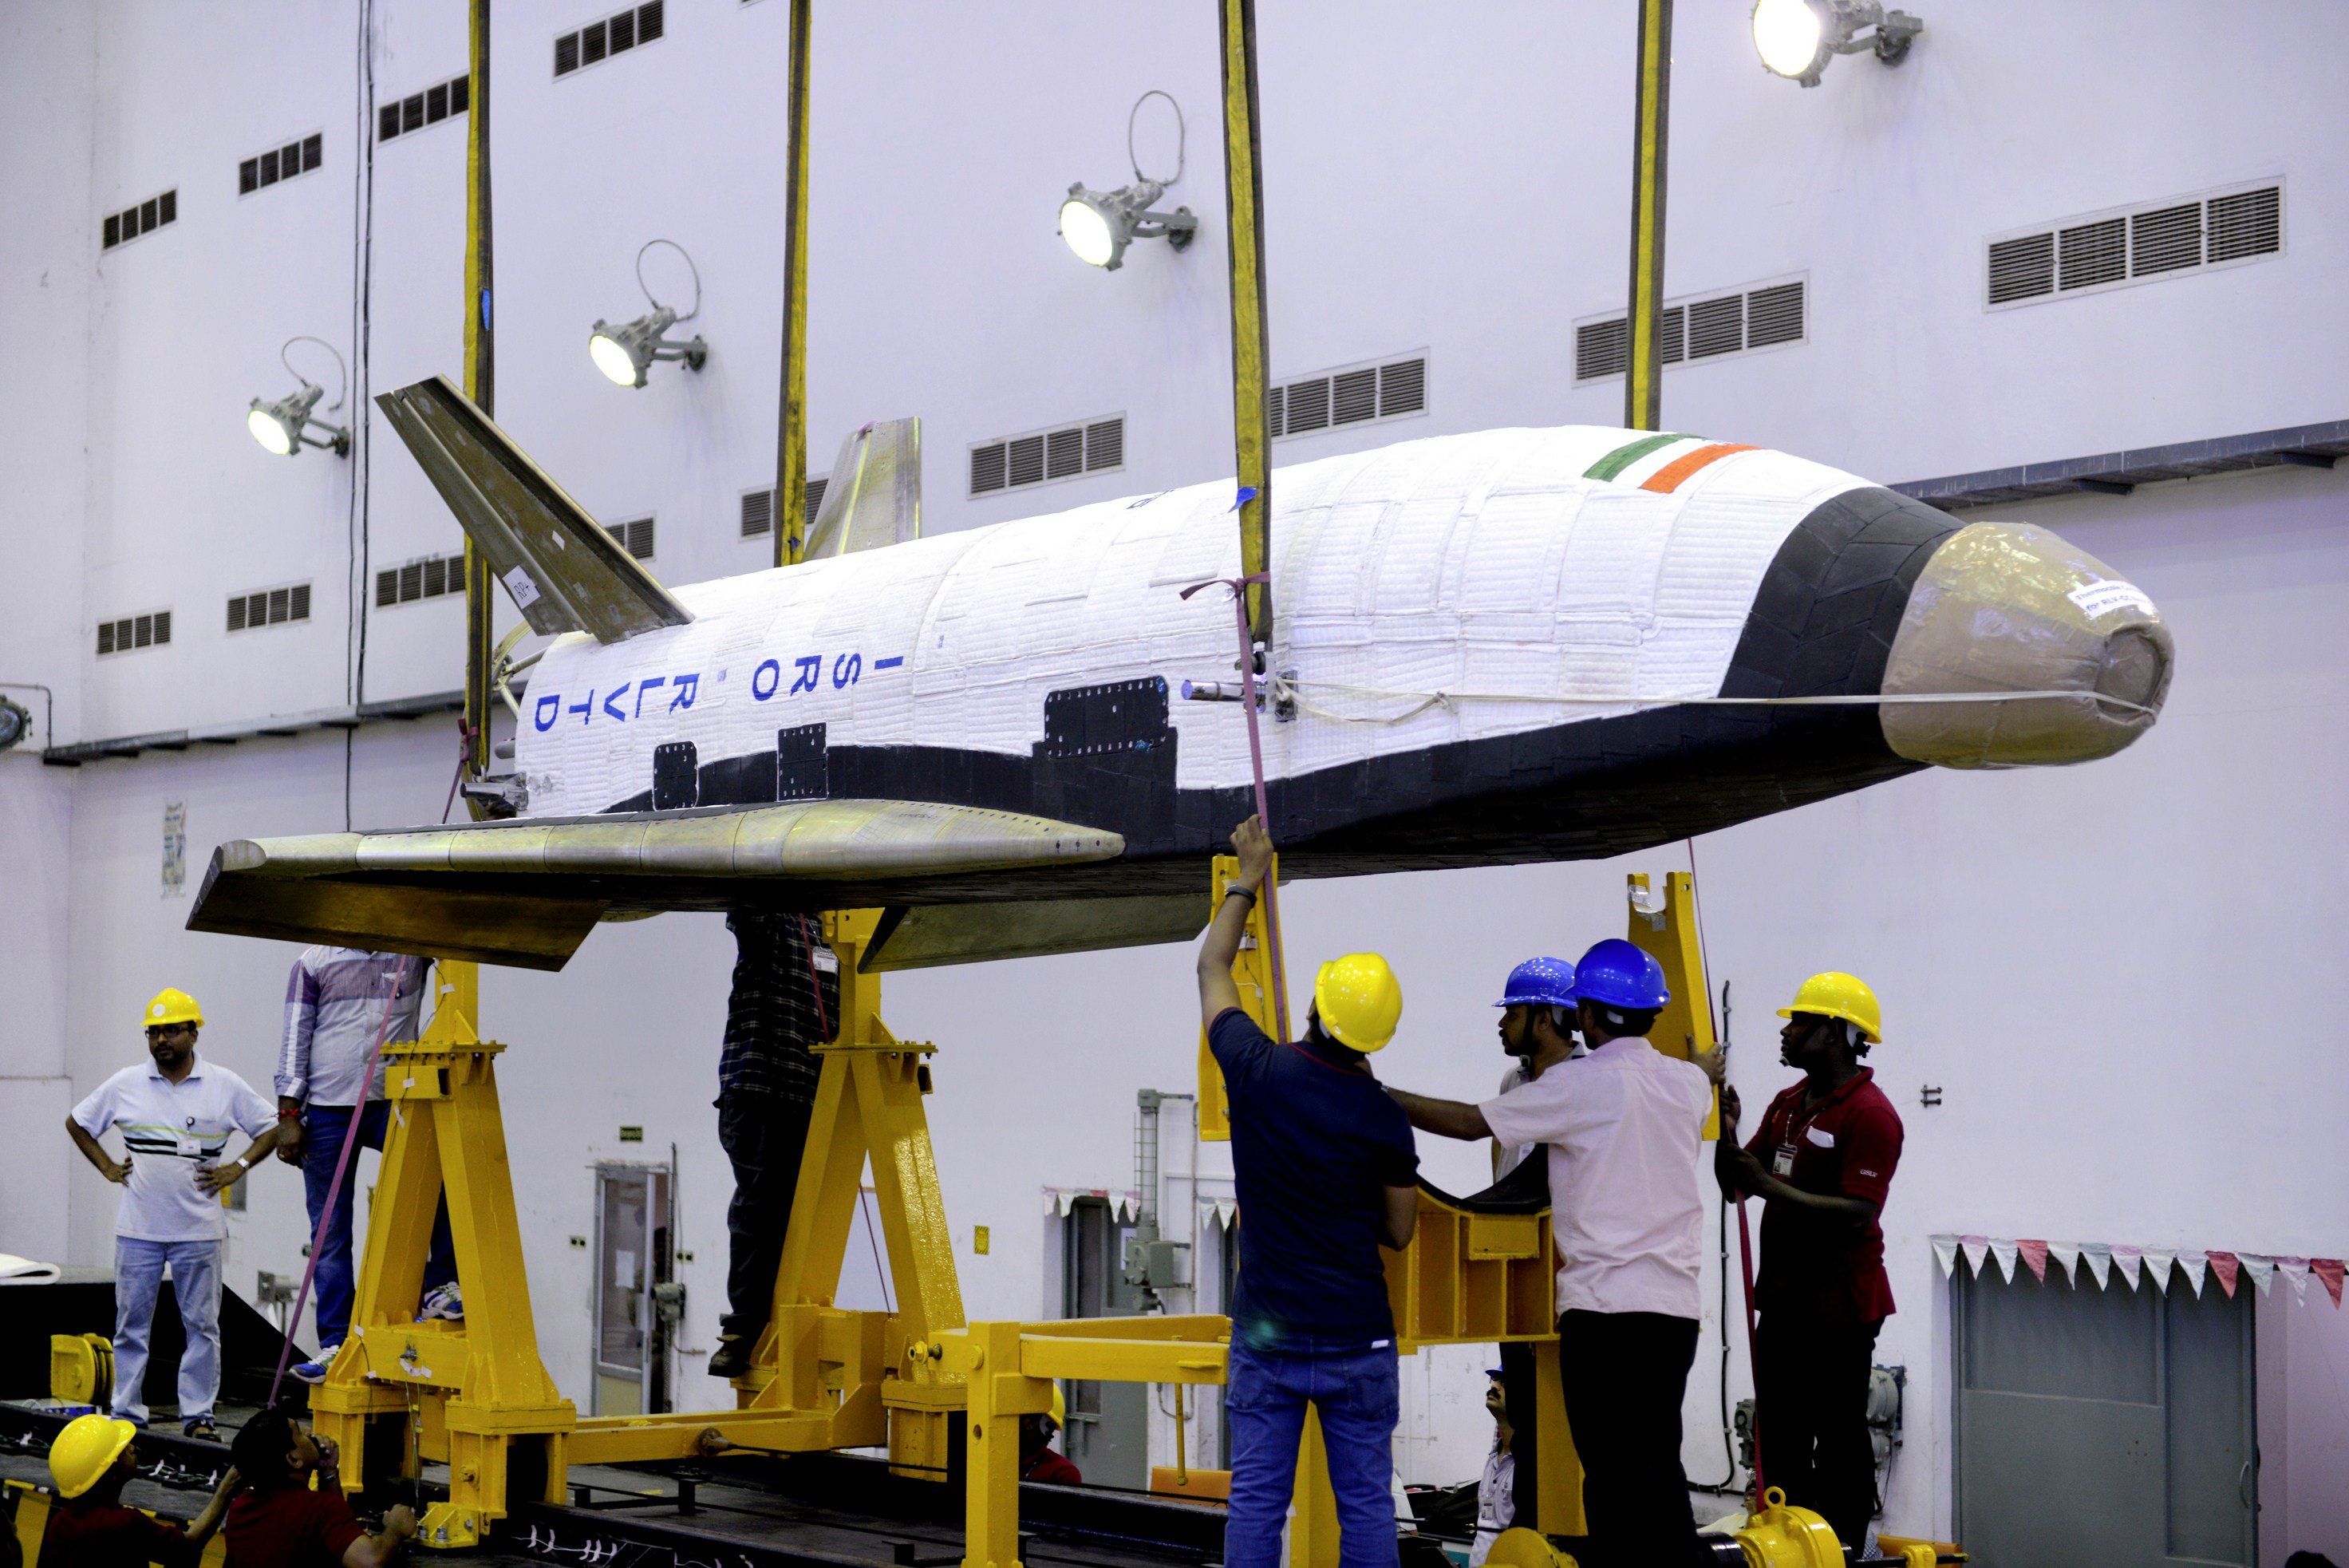 On May 23, 2016, India launched the first test flight of its Reusable Launch Vehicle Technology Demonstrator, a winged, unmanned spacecraft that resembles a miniature space shuttle.